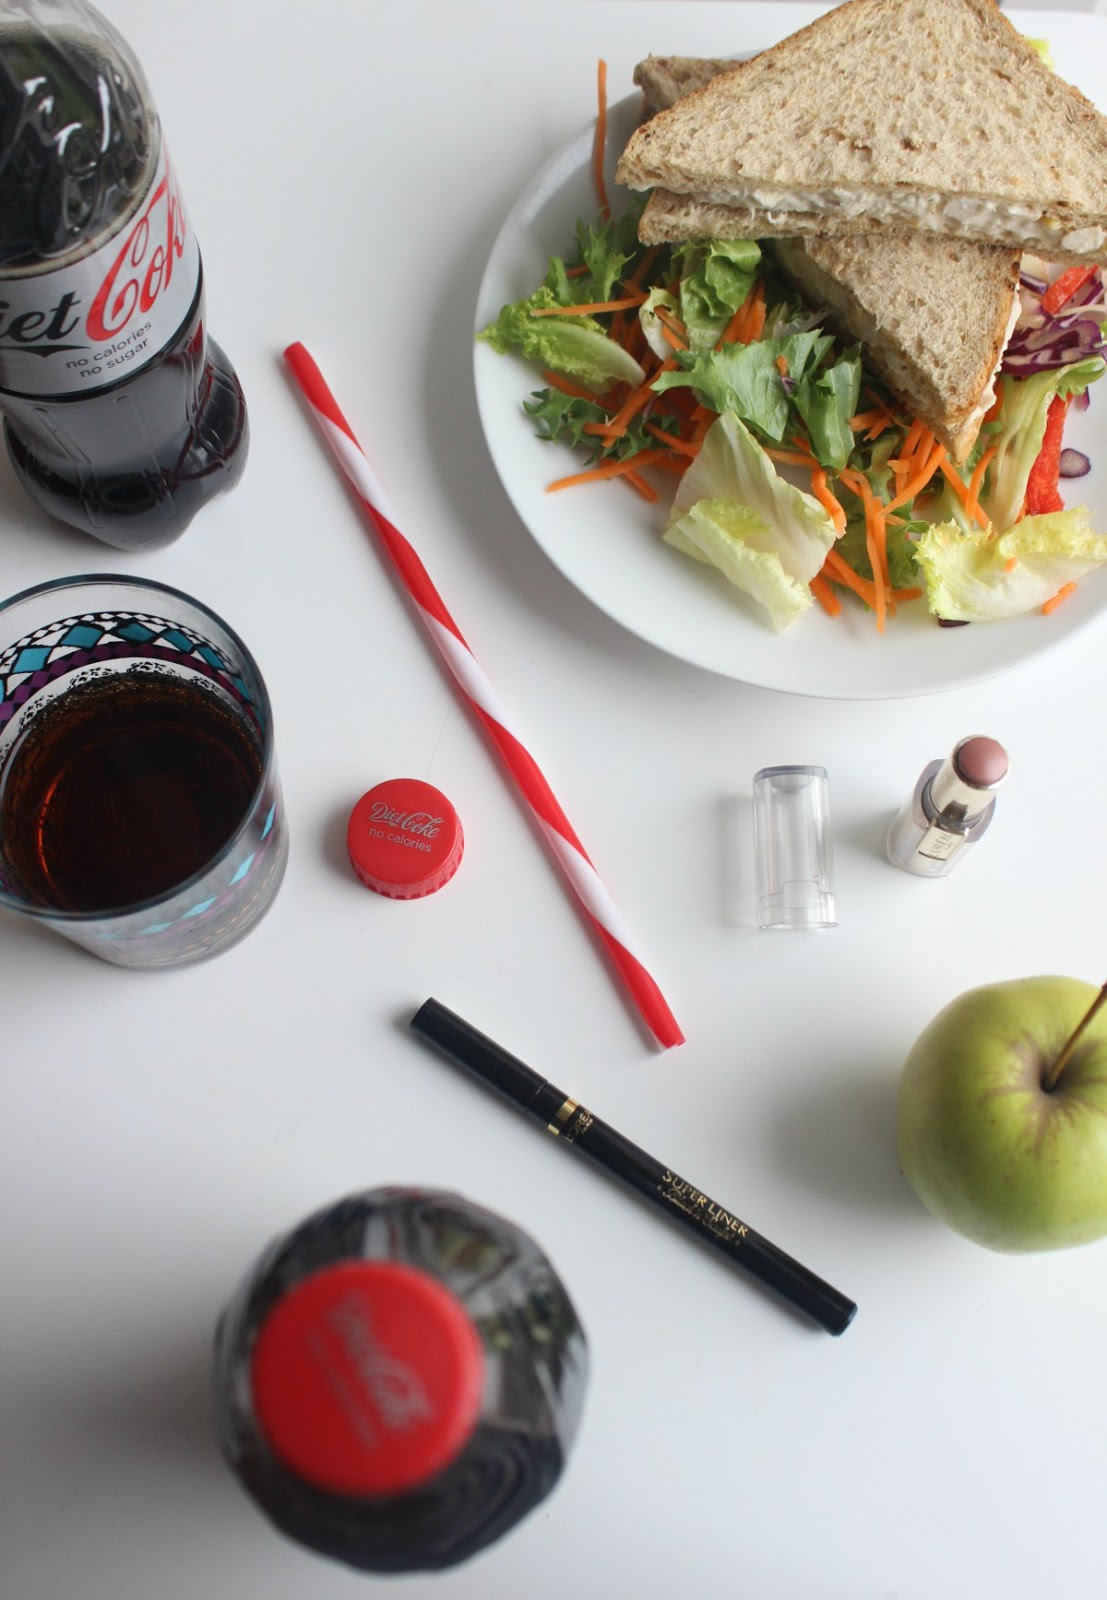 Diet Coke Beauty Break